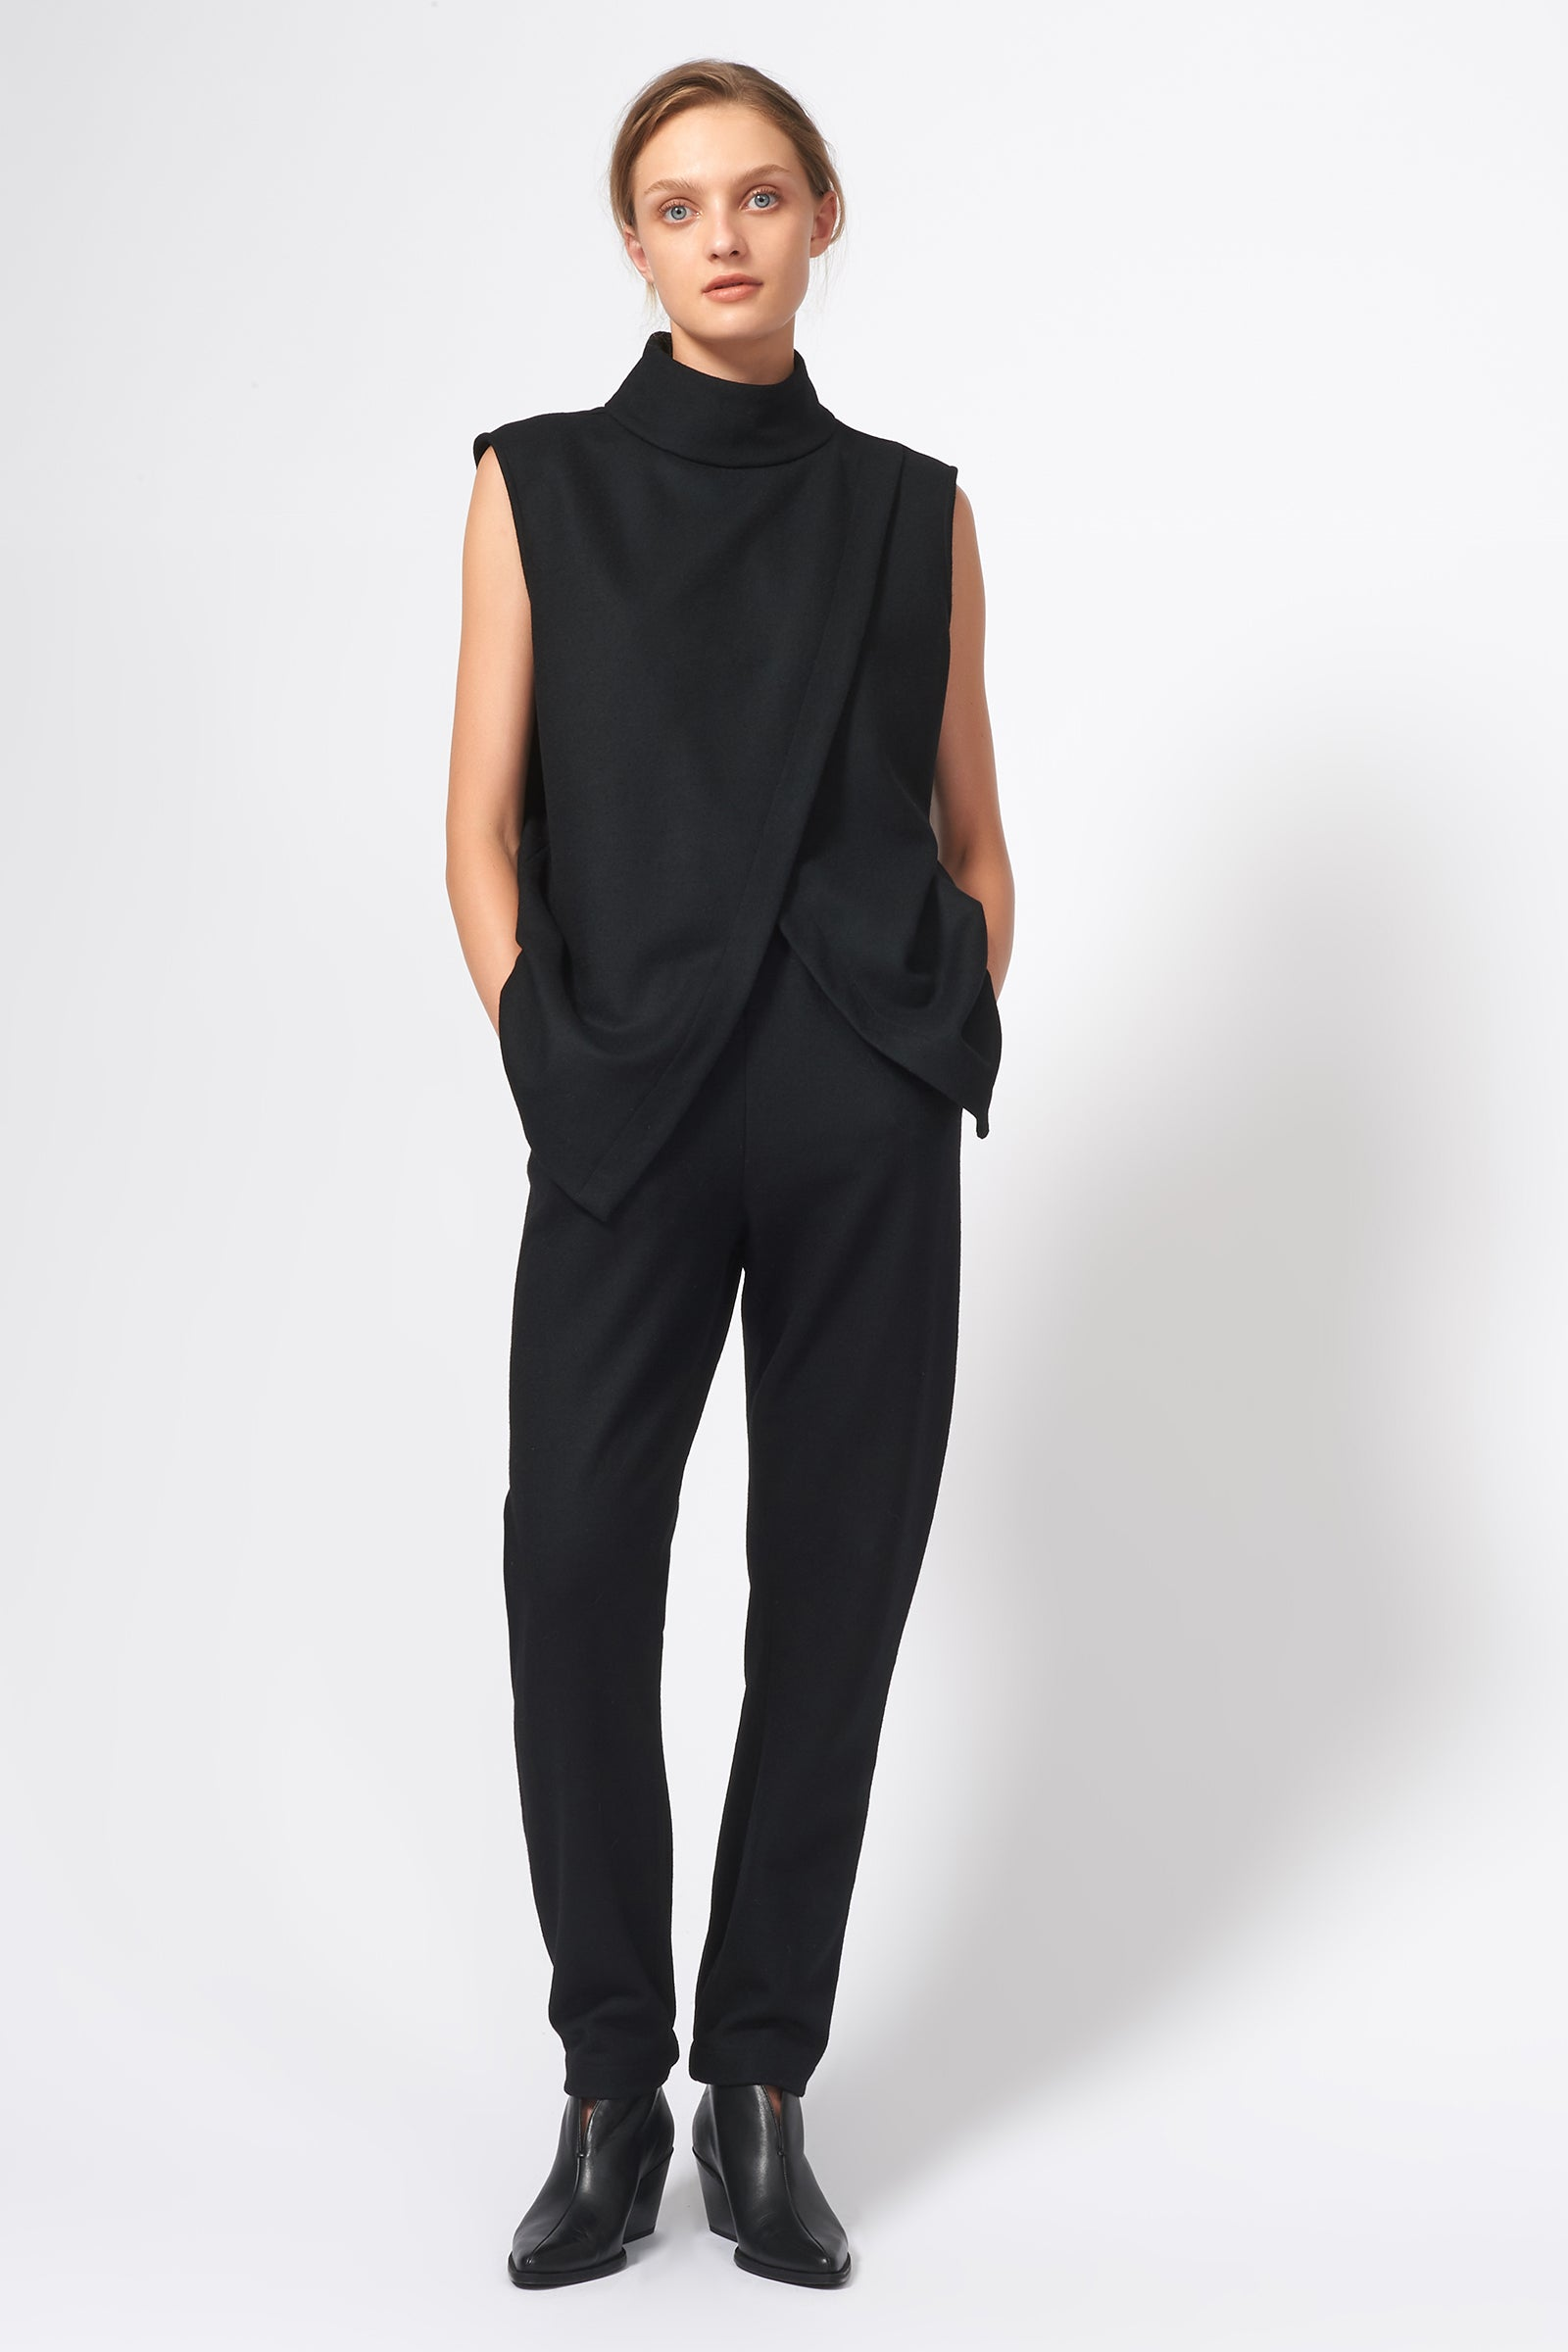 Kal Rieman Split Front T-Neck in Black on Model Full Front View